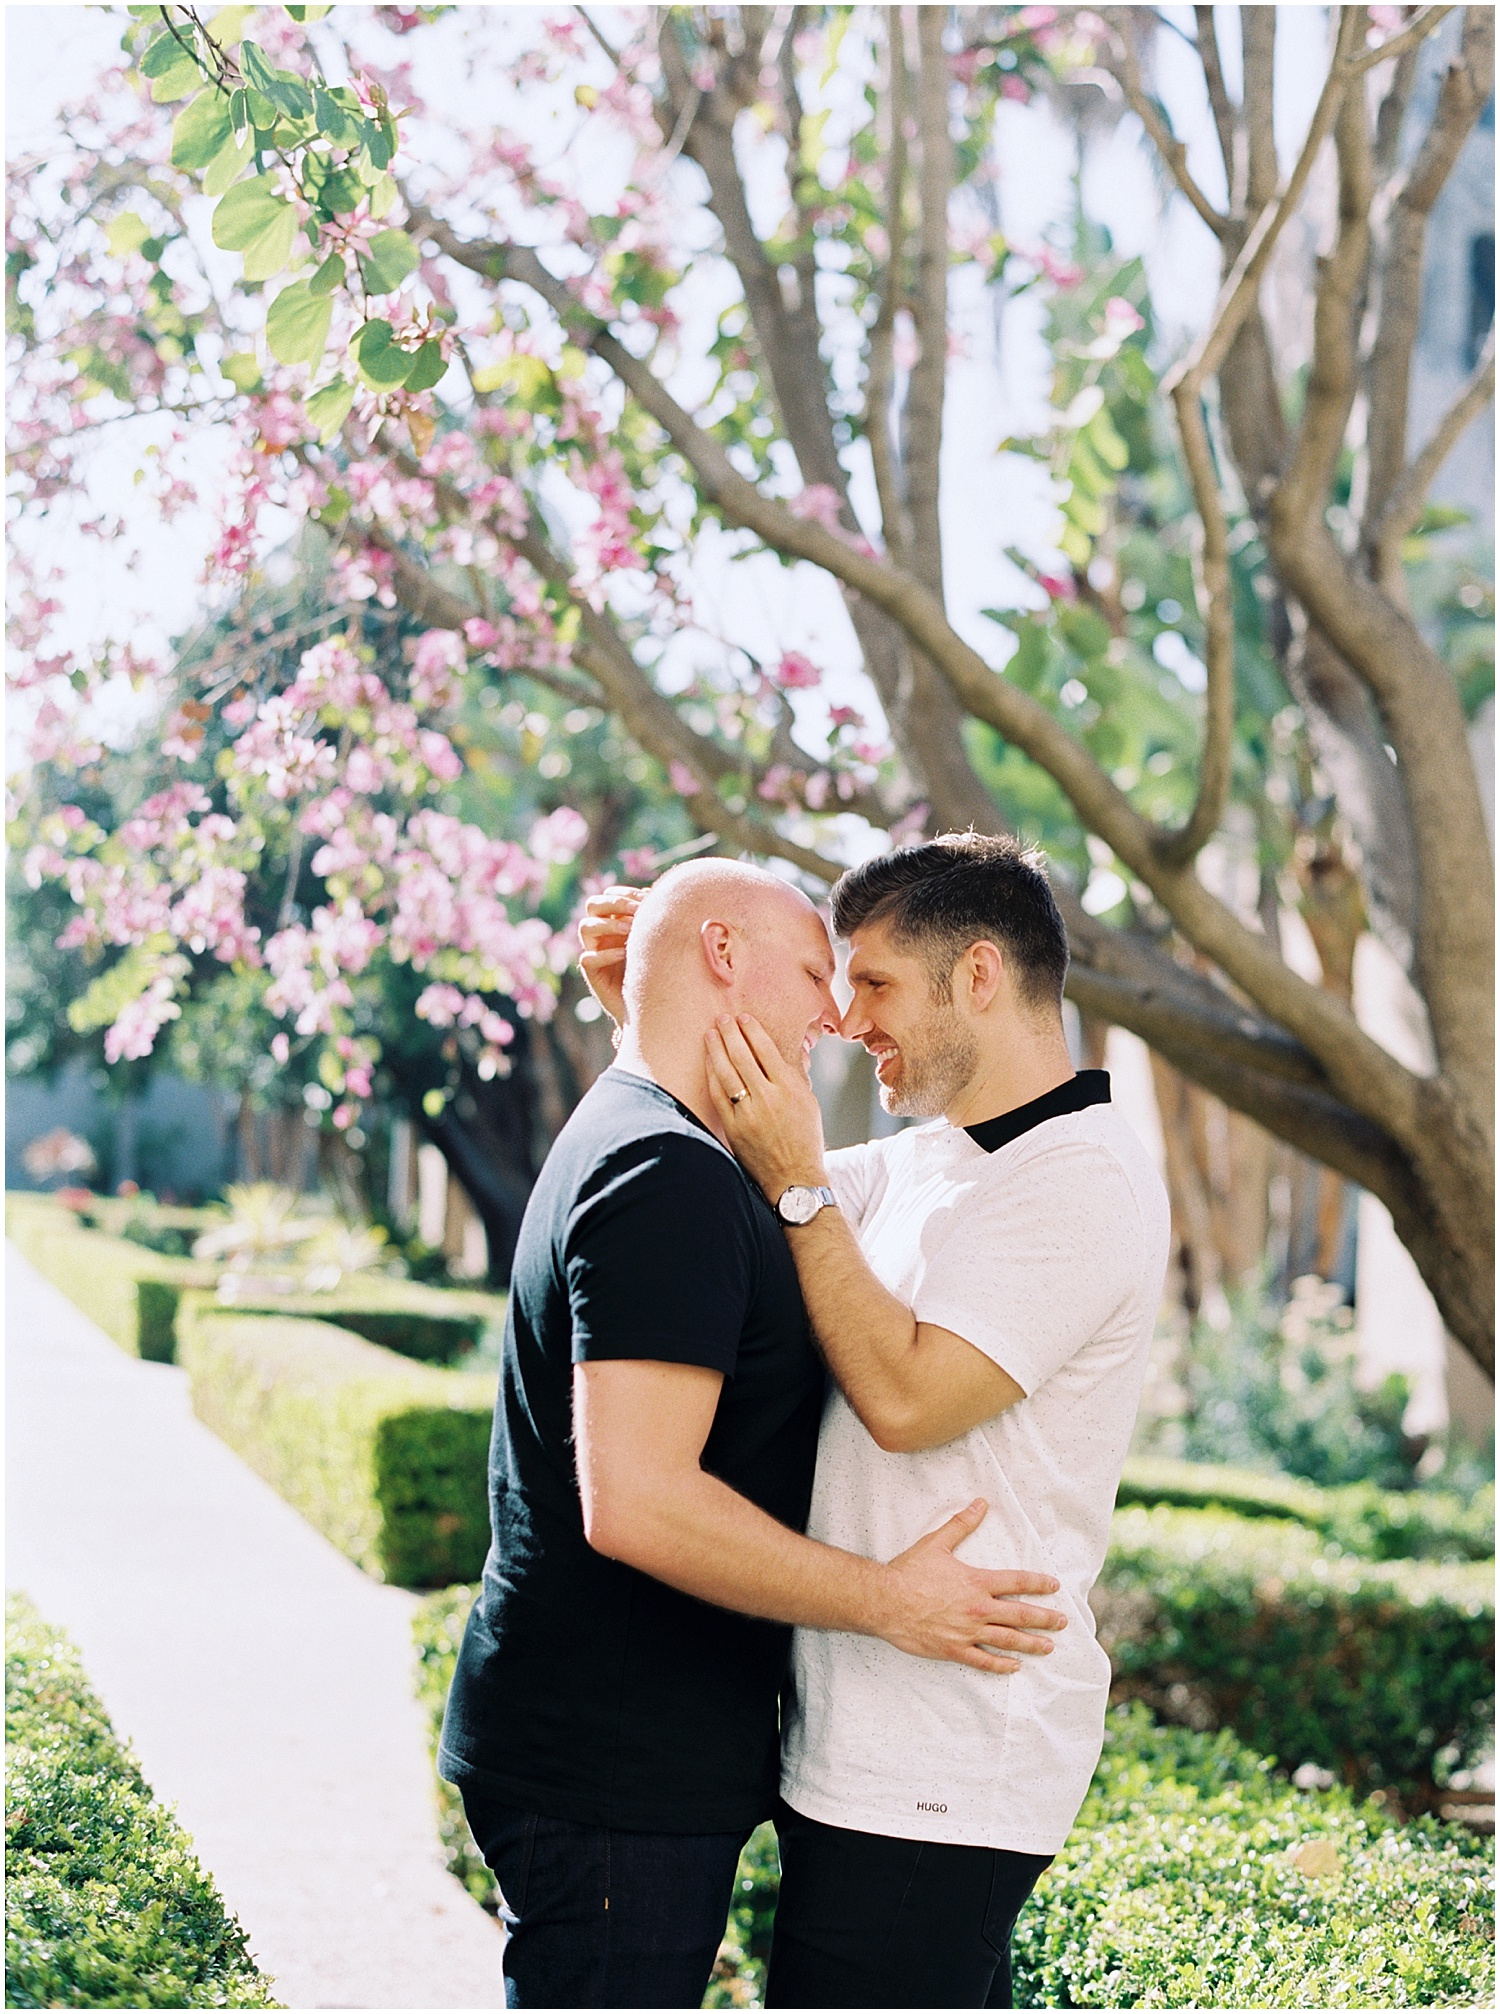 San_Francisco_Same_Sex_Wedding_photographer-06.jpg